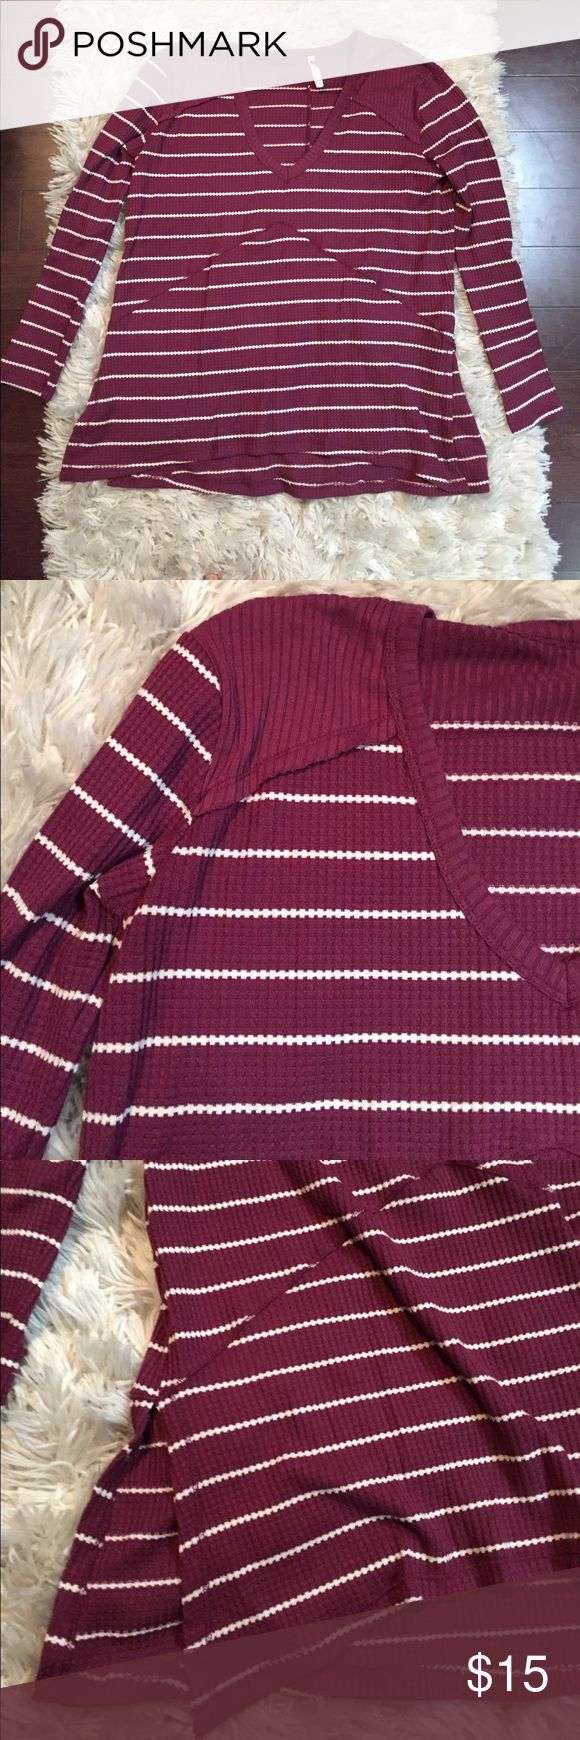 Long sleeve stripe top Slouchy slightly longer in back. Thermal like feel. Cute with jeans and boots for cold weather Tops